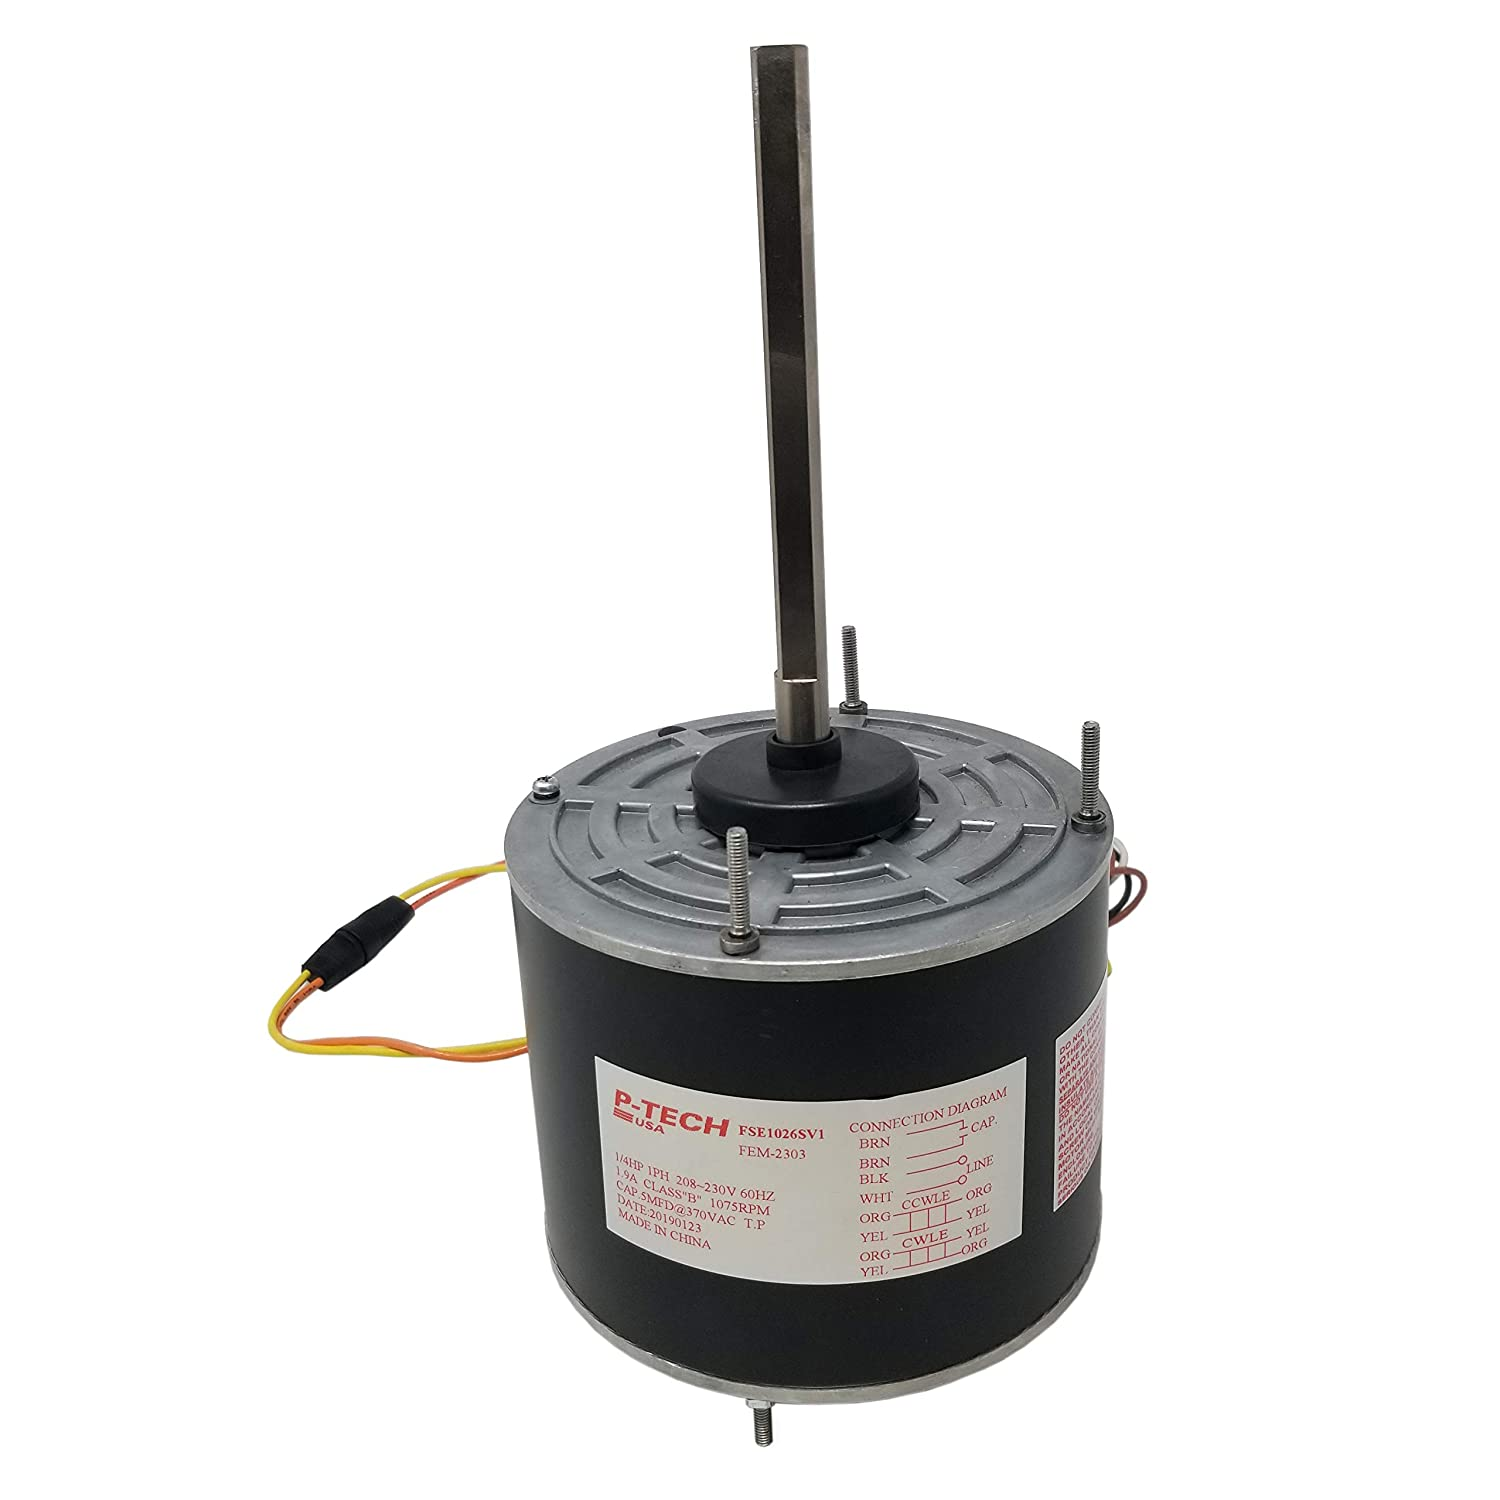 48 Frame Condenser Motor | Replaces: A.O. Smith FSE1026SV1